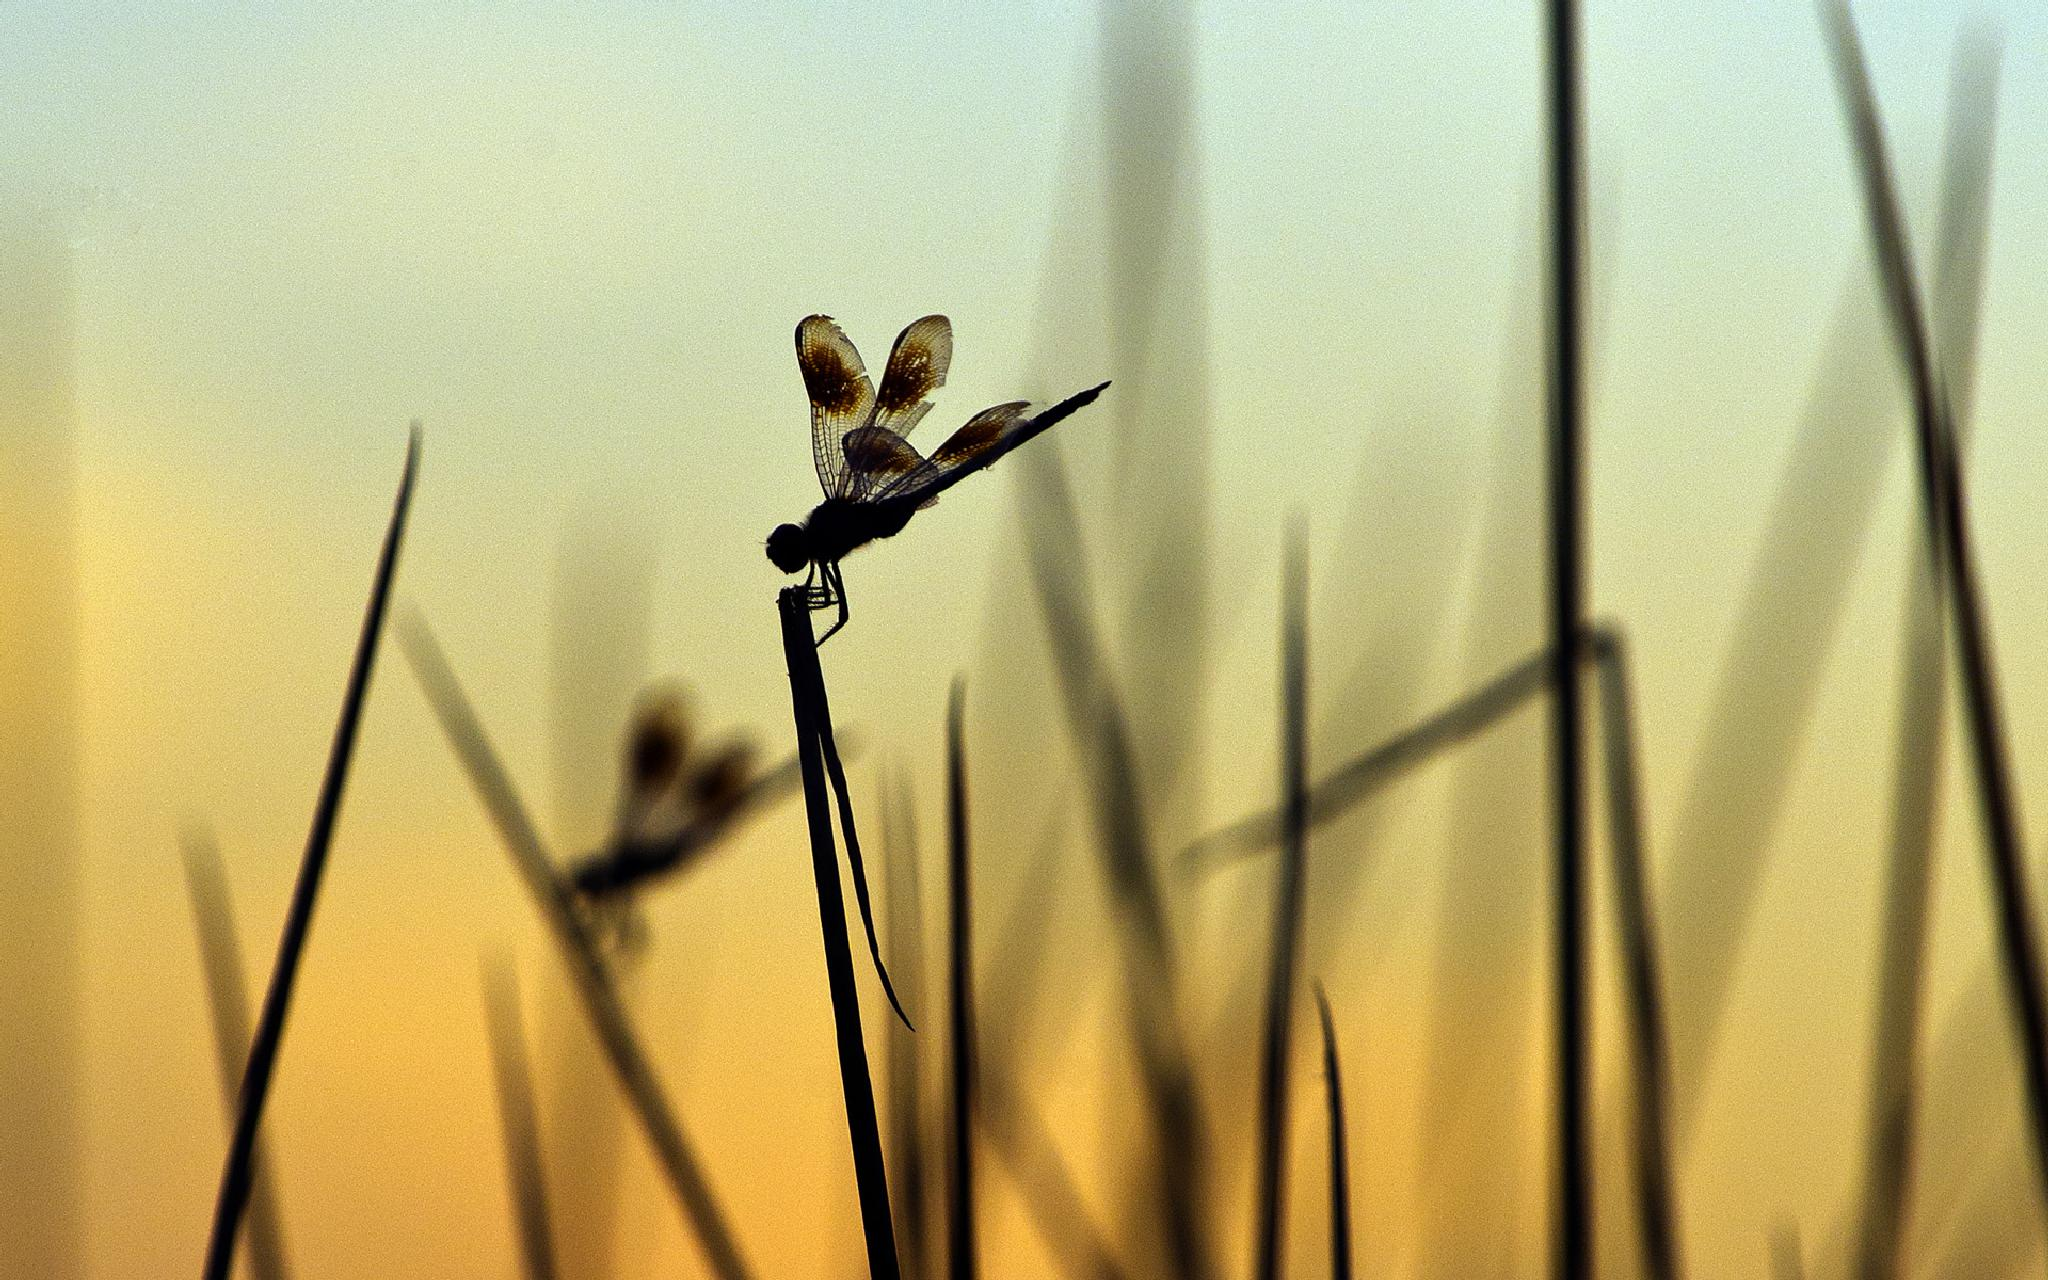 Dragon fly at Sunset by ImagesbyChase